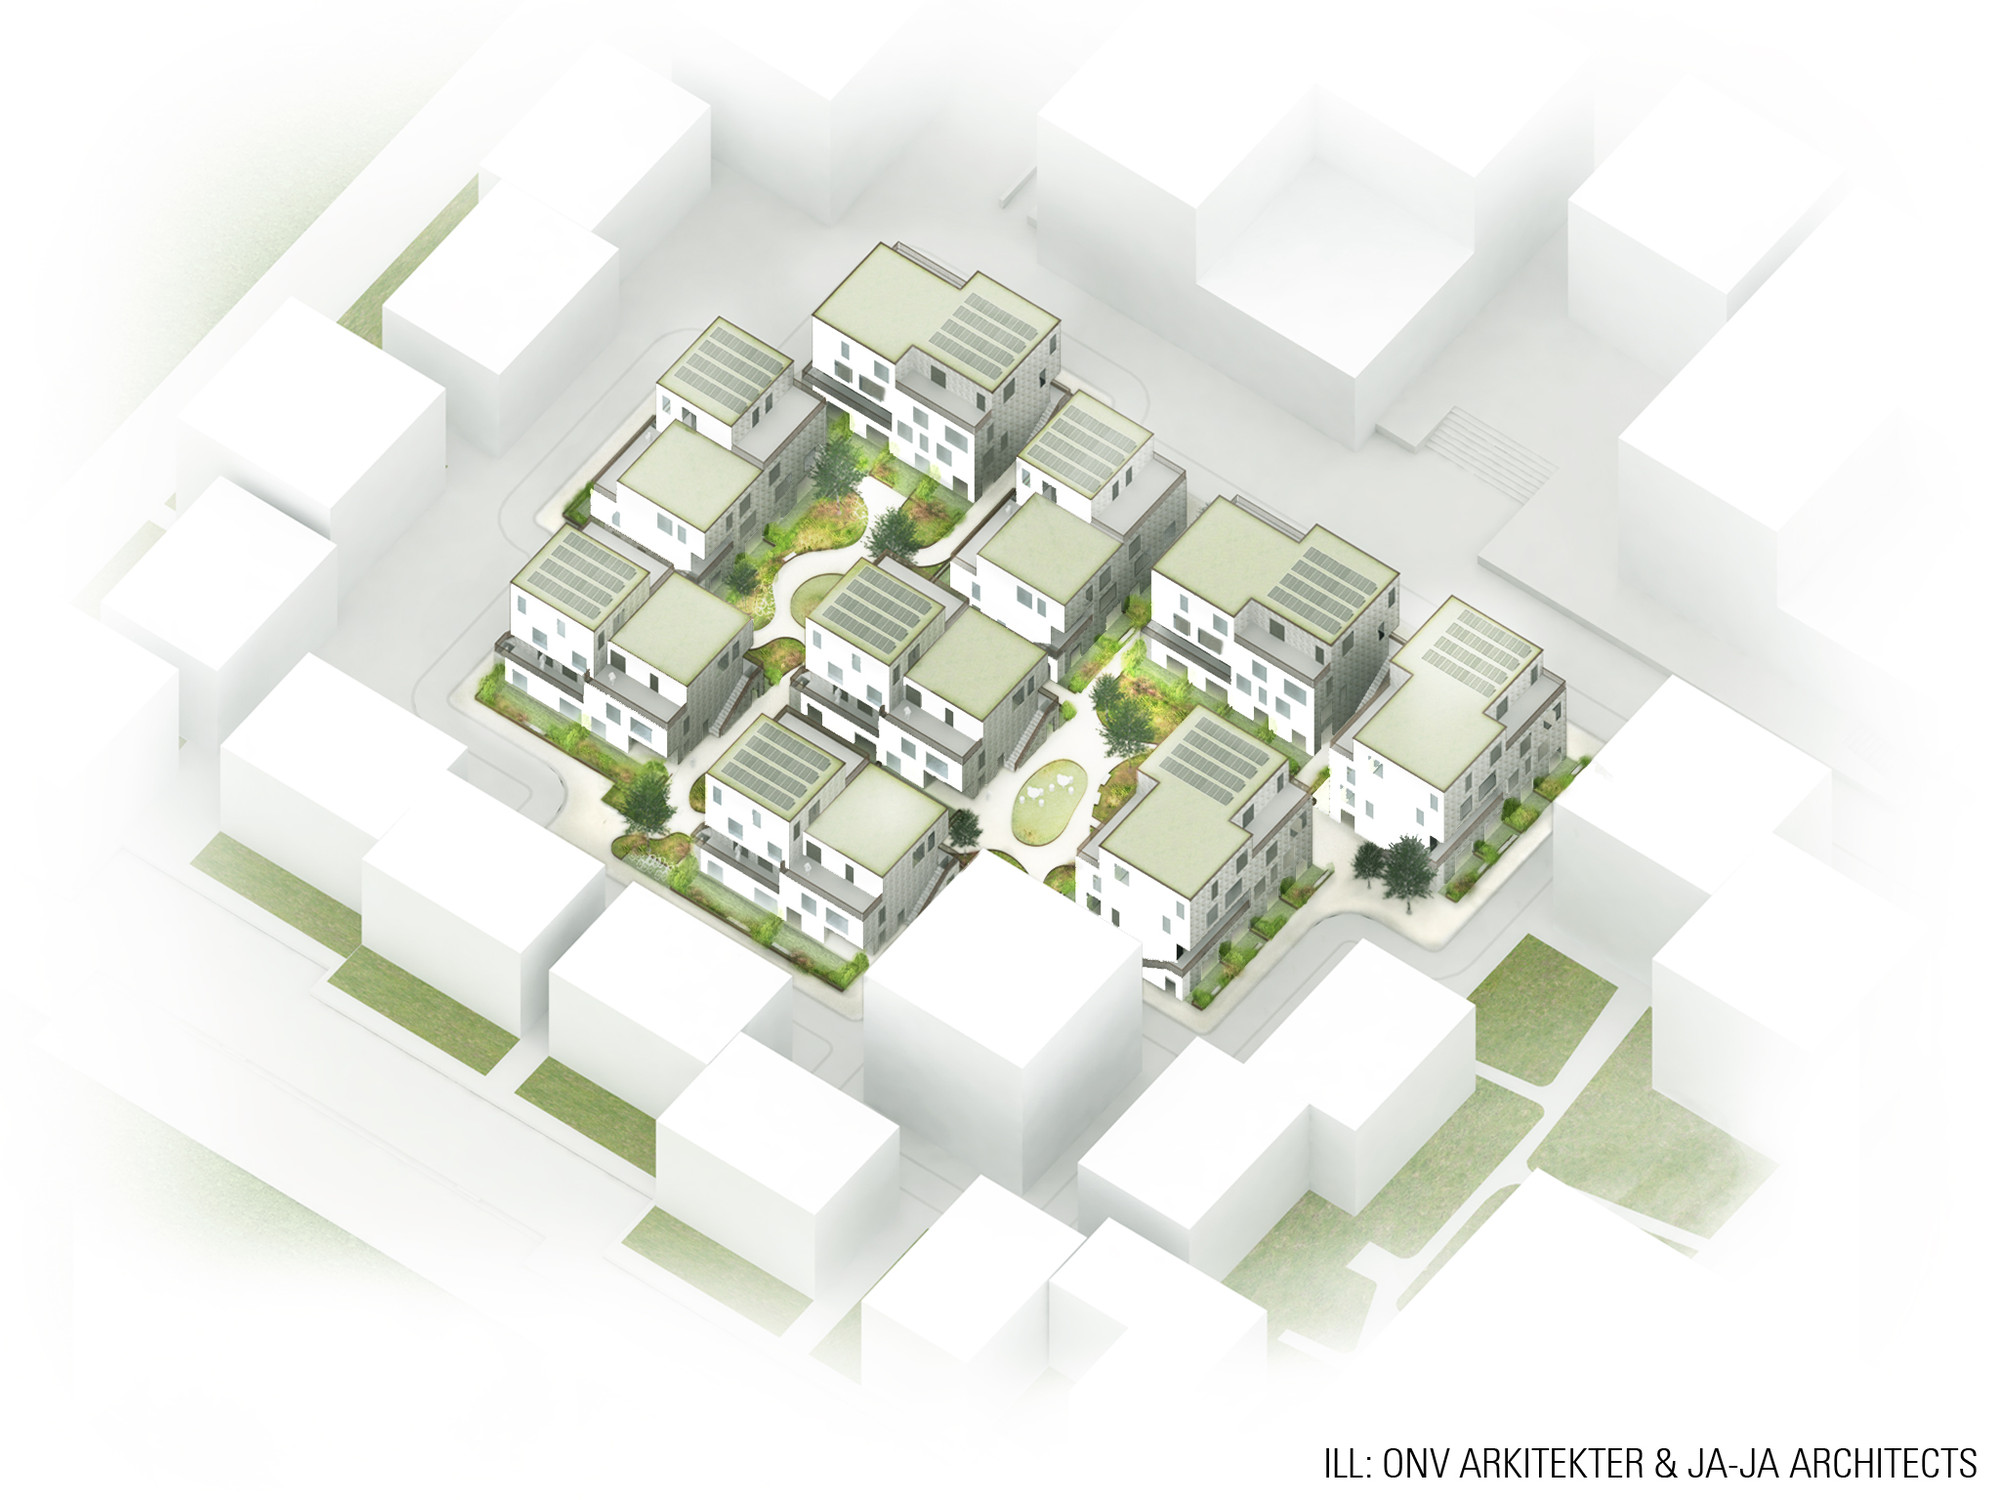 Gallery of AlmenBolig+ Affordable Housing Winning Proposal